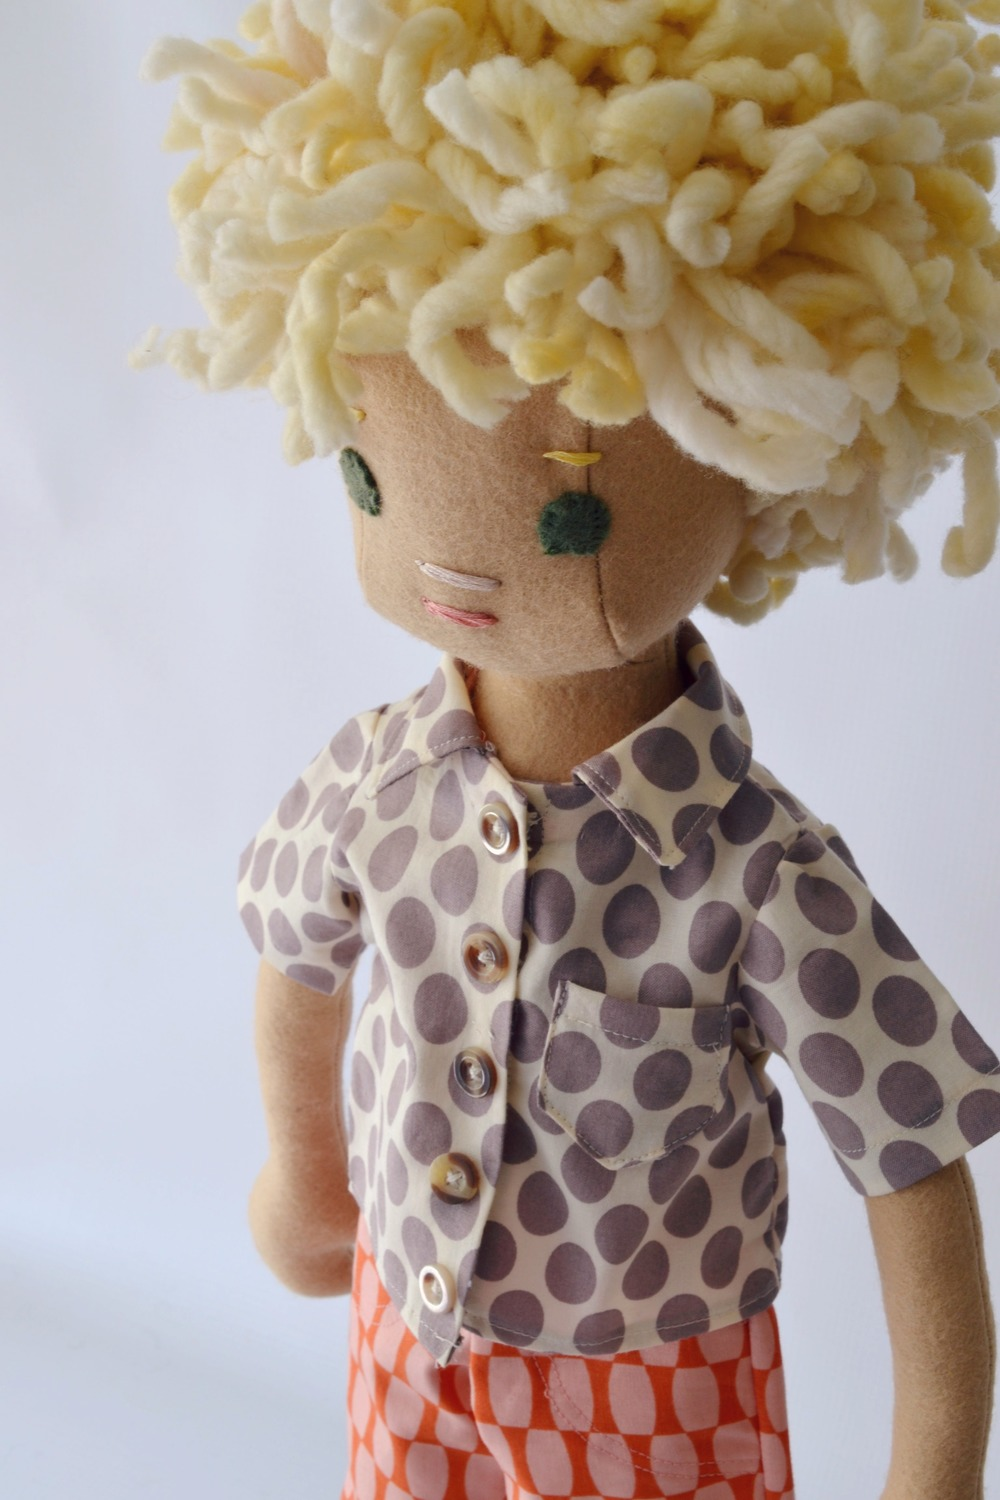 A new boy doll with a bit of bedhead--typical boy